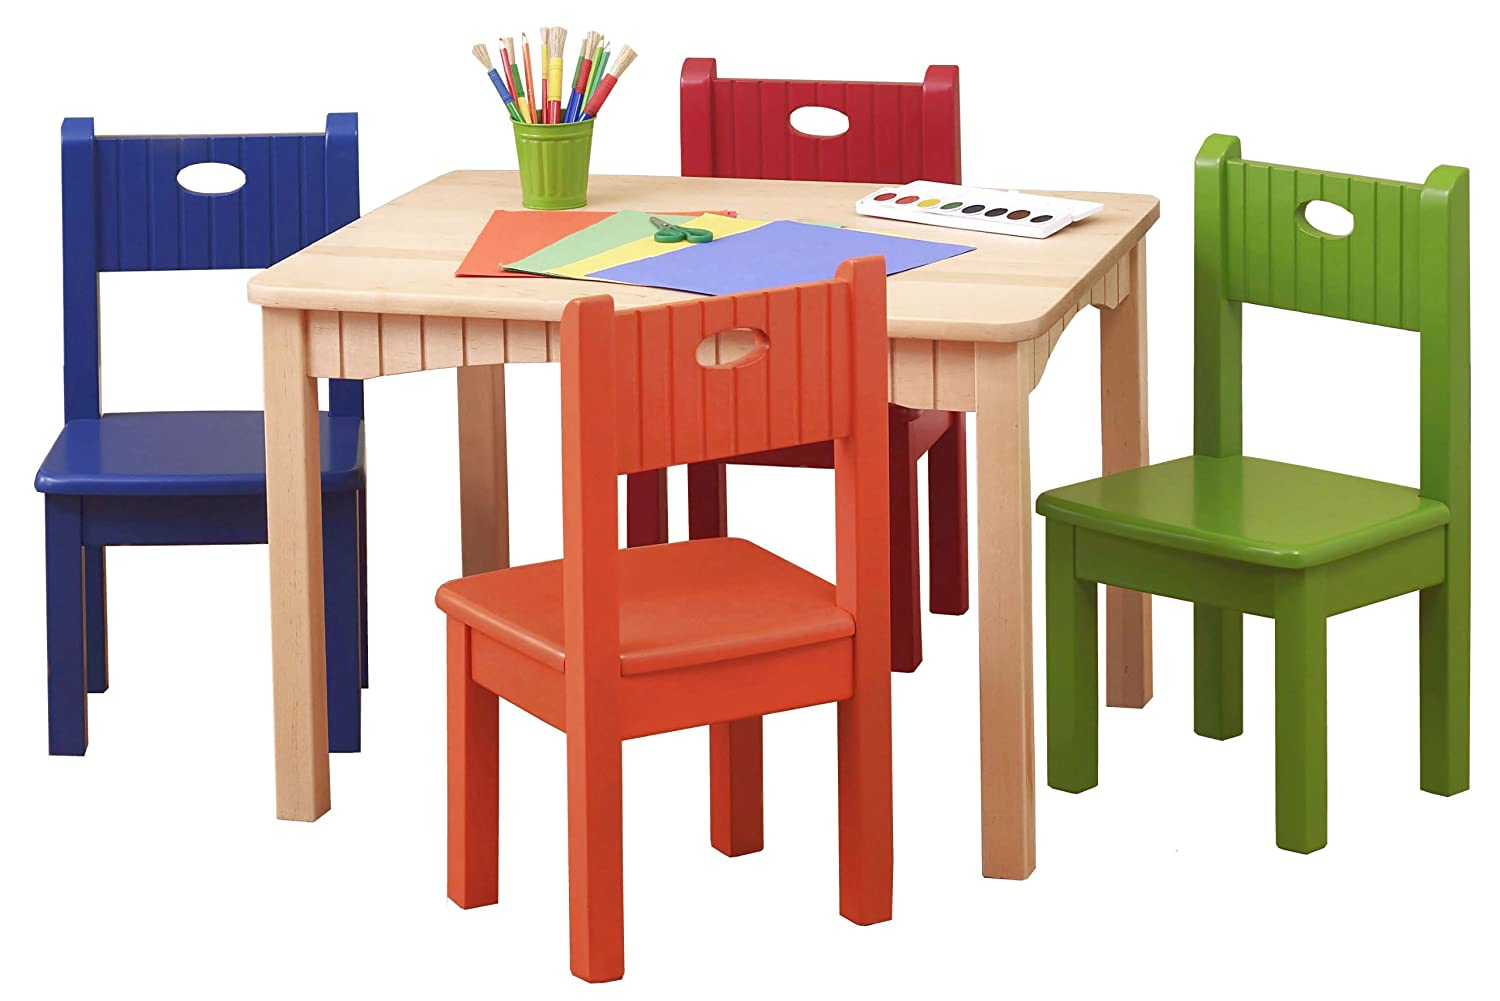 Ukid Natural Wood Activity Table and 4 Bright Chair Set BUY NOW